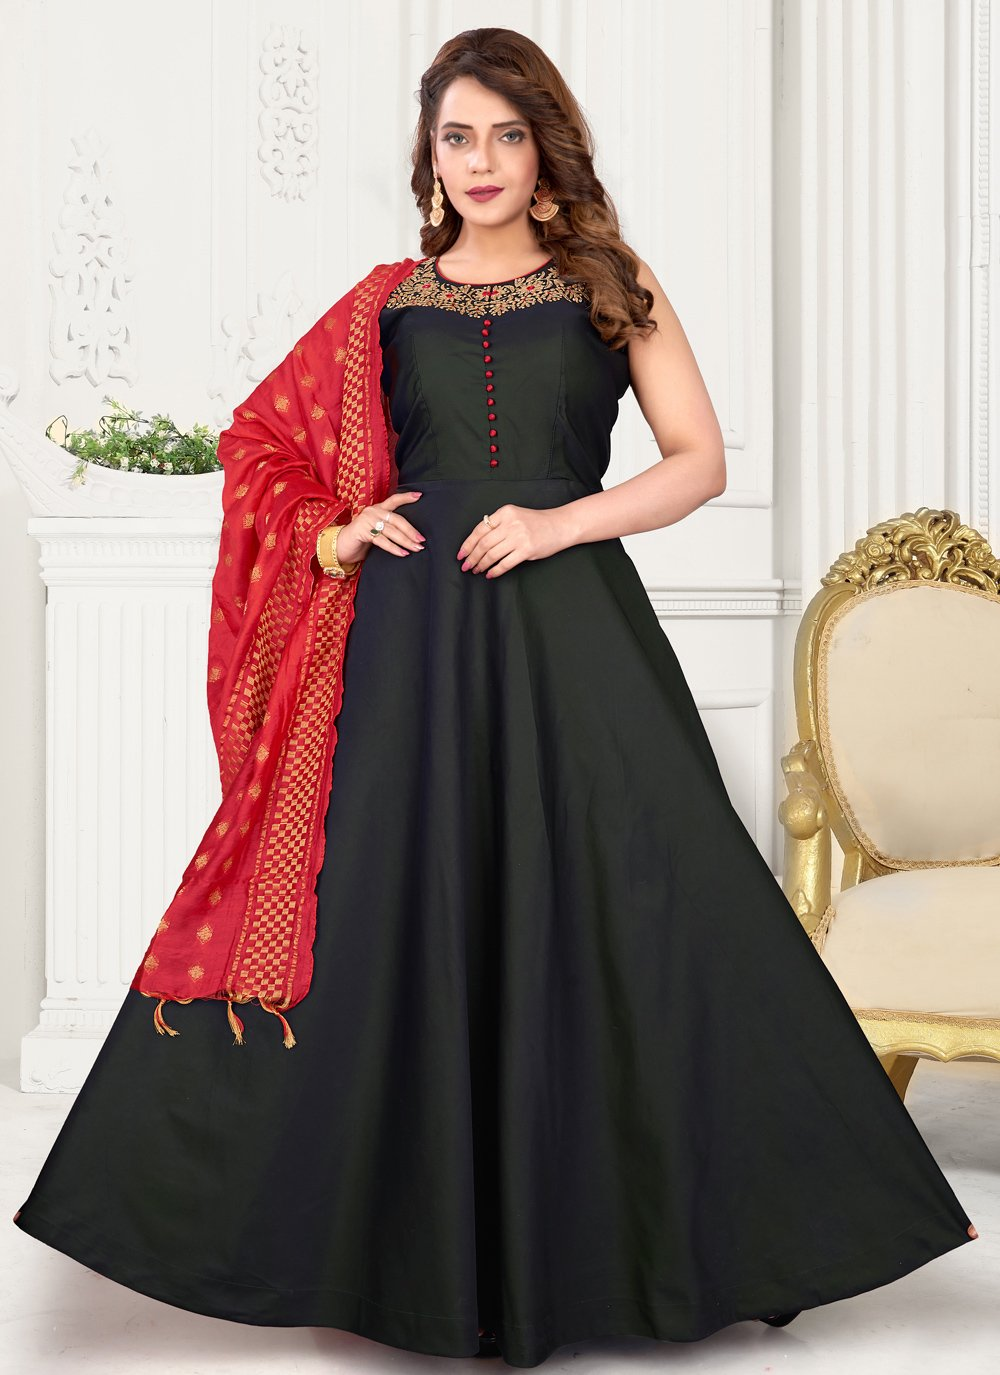 Readymade Suit For Sangeet